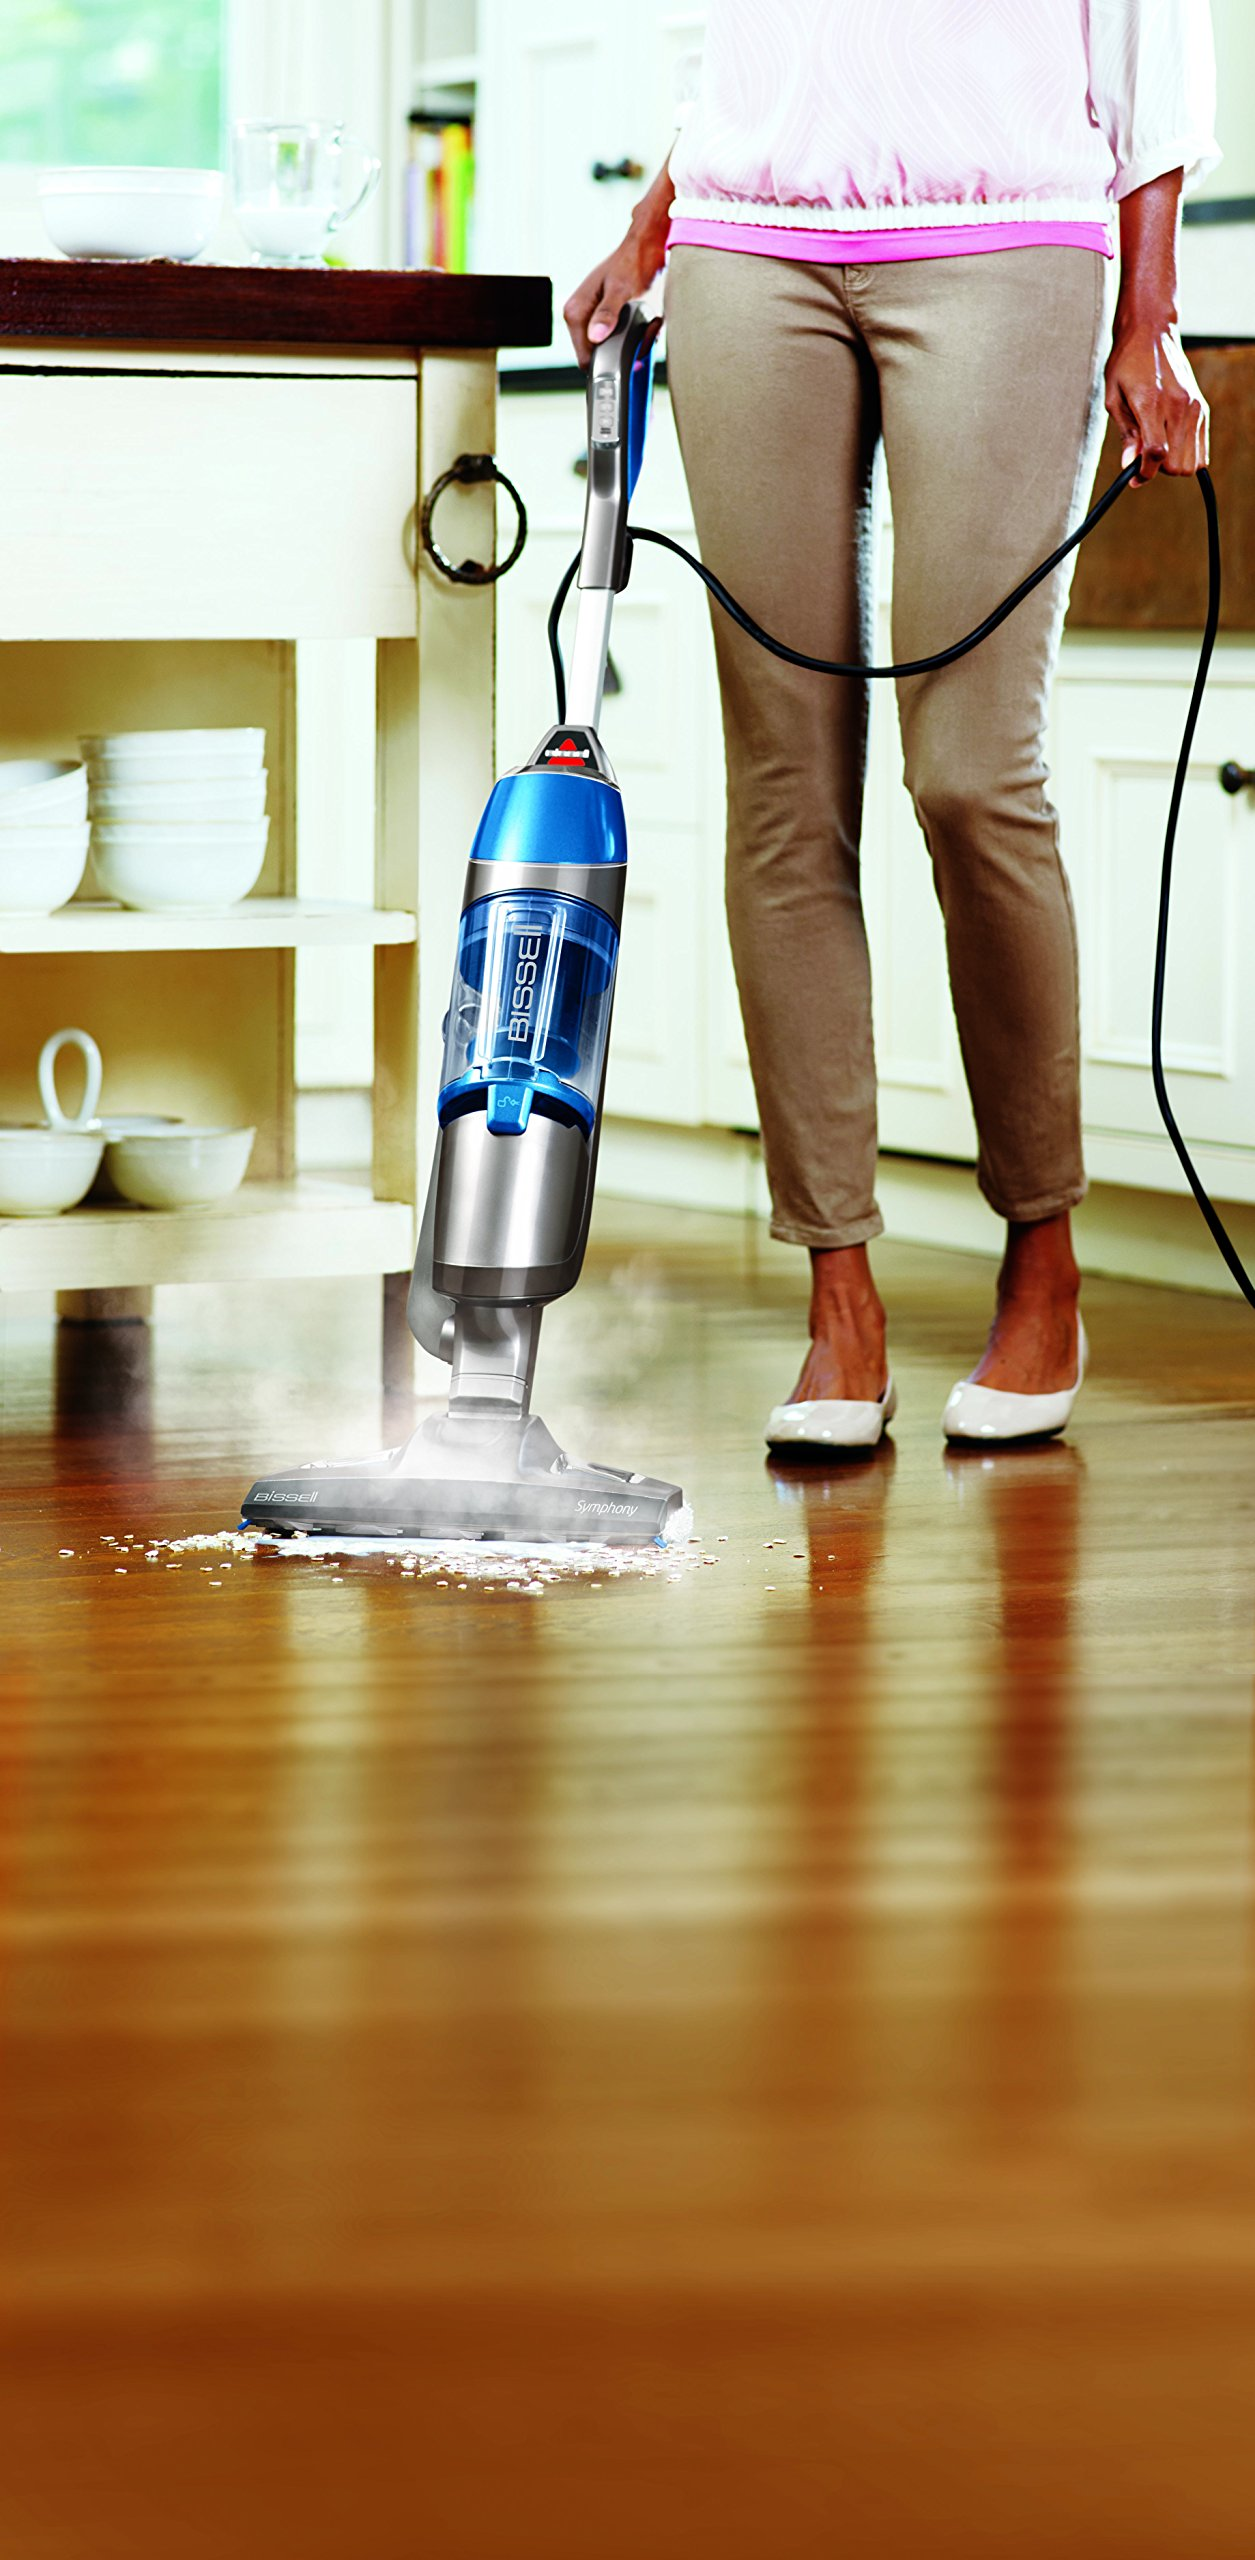 Bissell Symphony Steam Mop and Steam Vacuum for Hardwood and Tile Floors, 4 Mop Pads Included, 1132A by Bissell (Image #6)